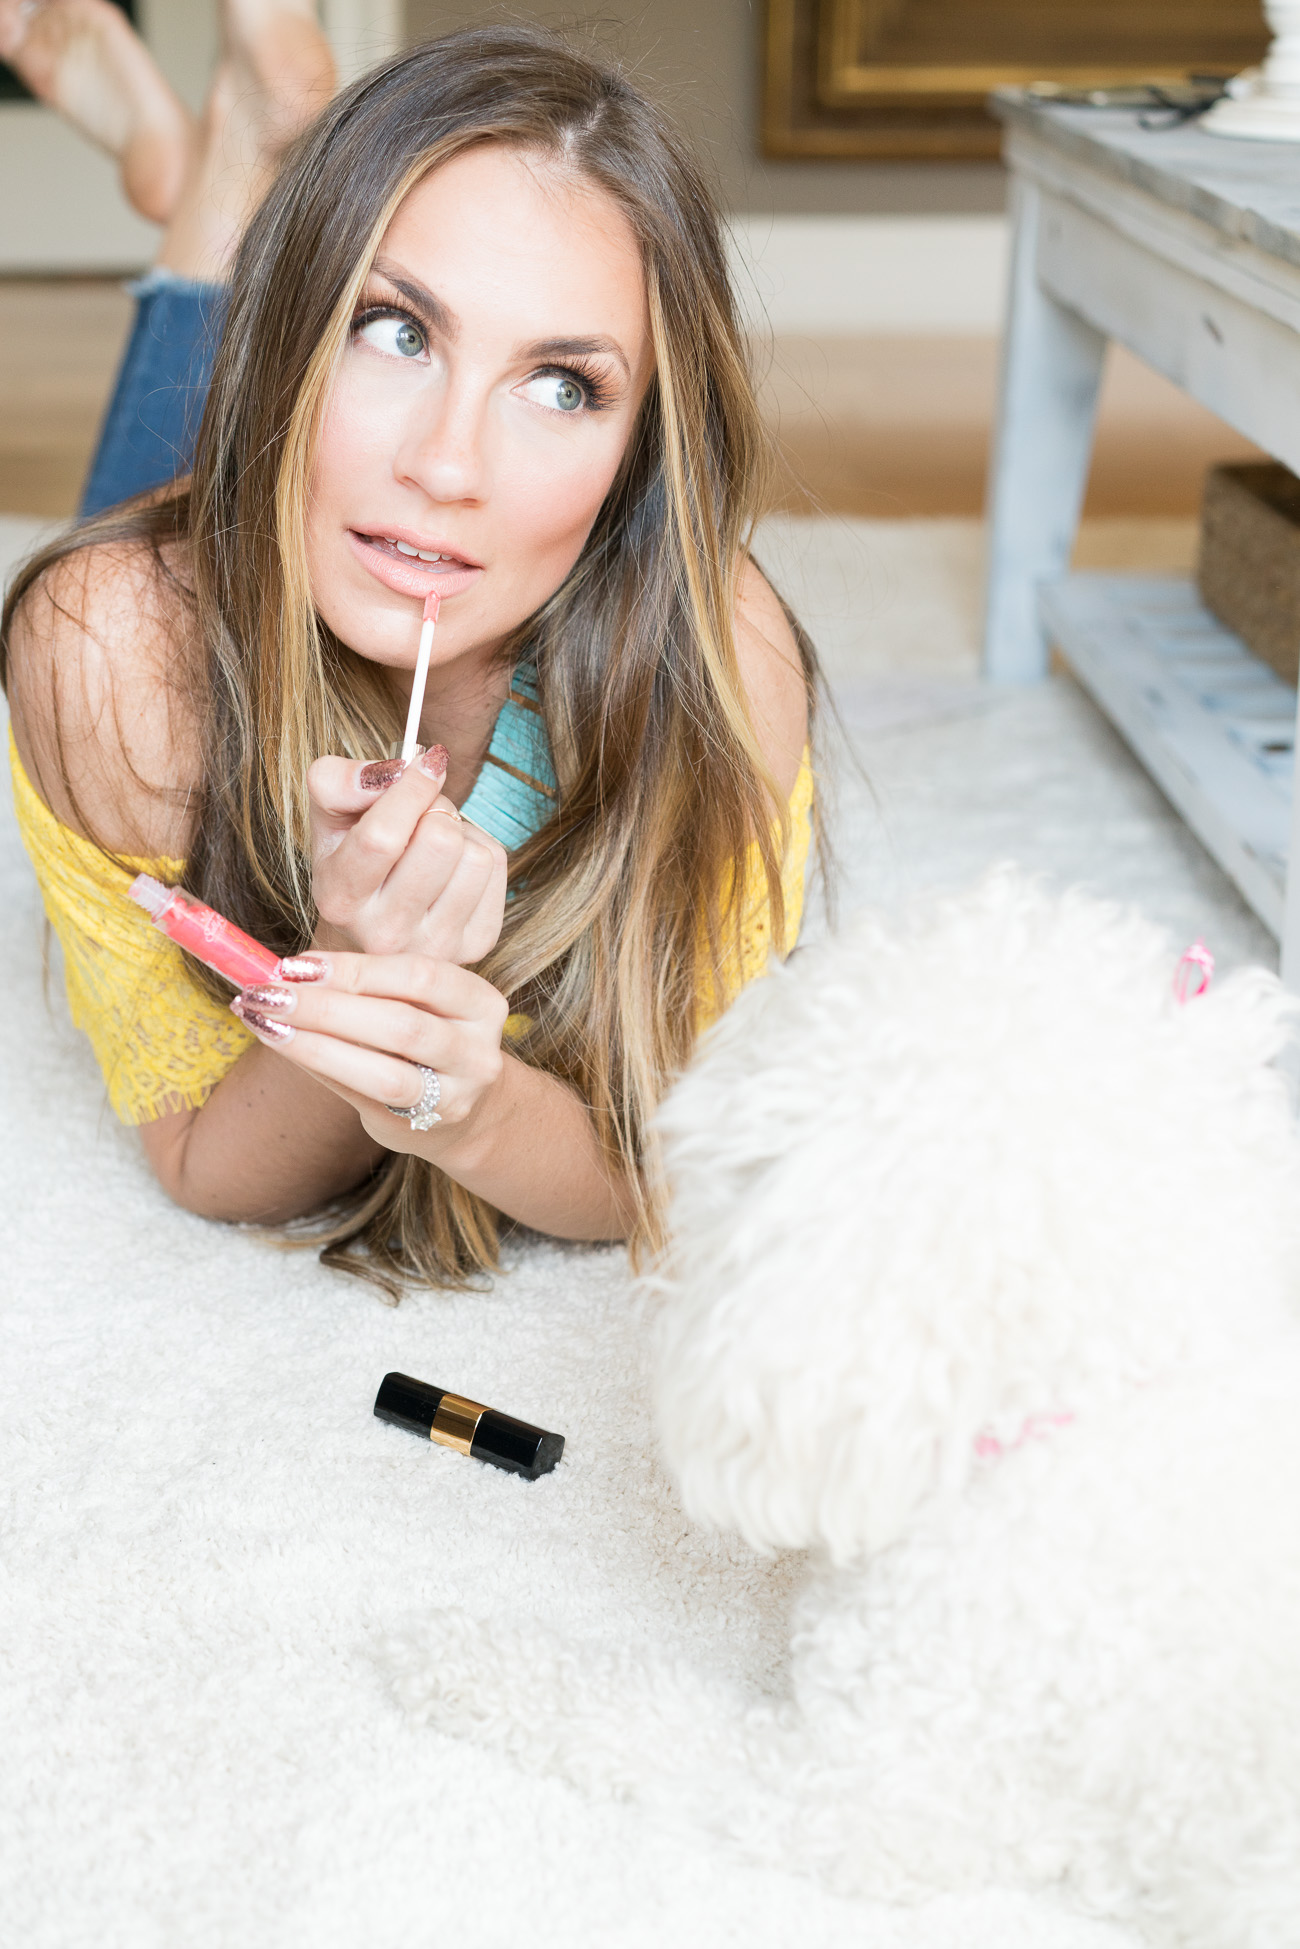 EWG Verified Sally B's Lip Gloss Angela Lanter Hello Gorgeous